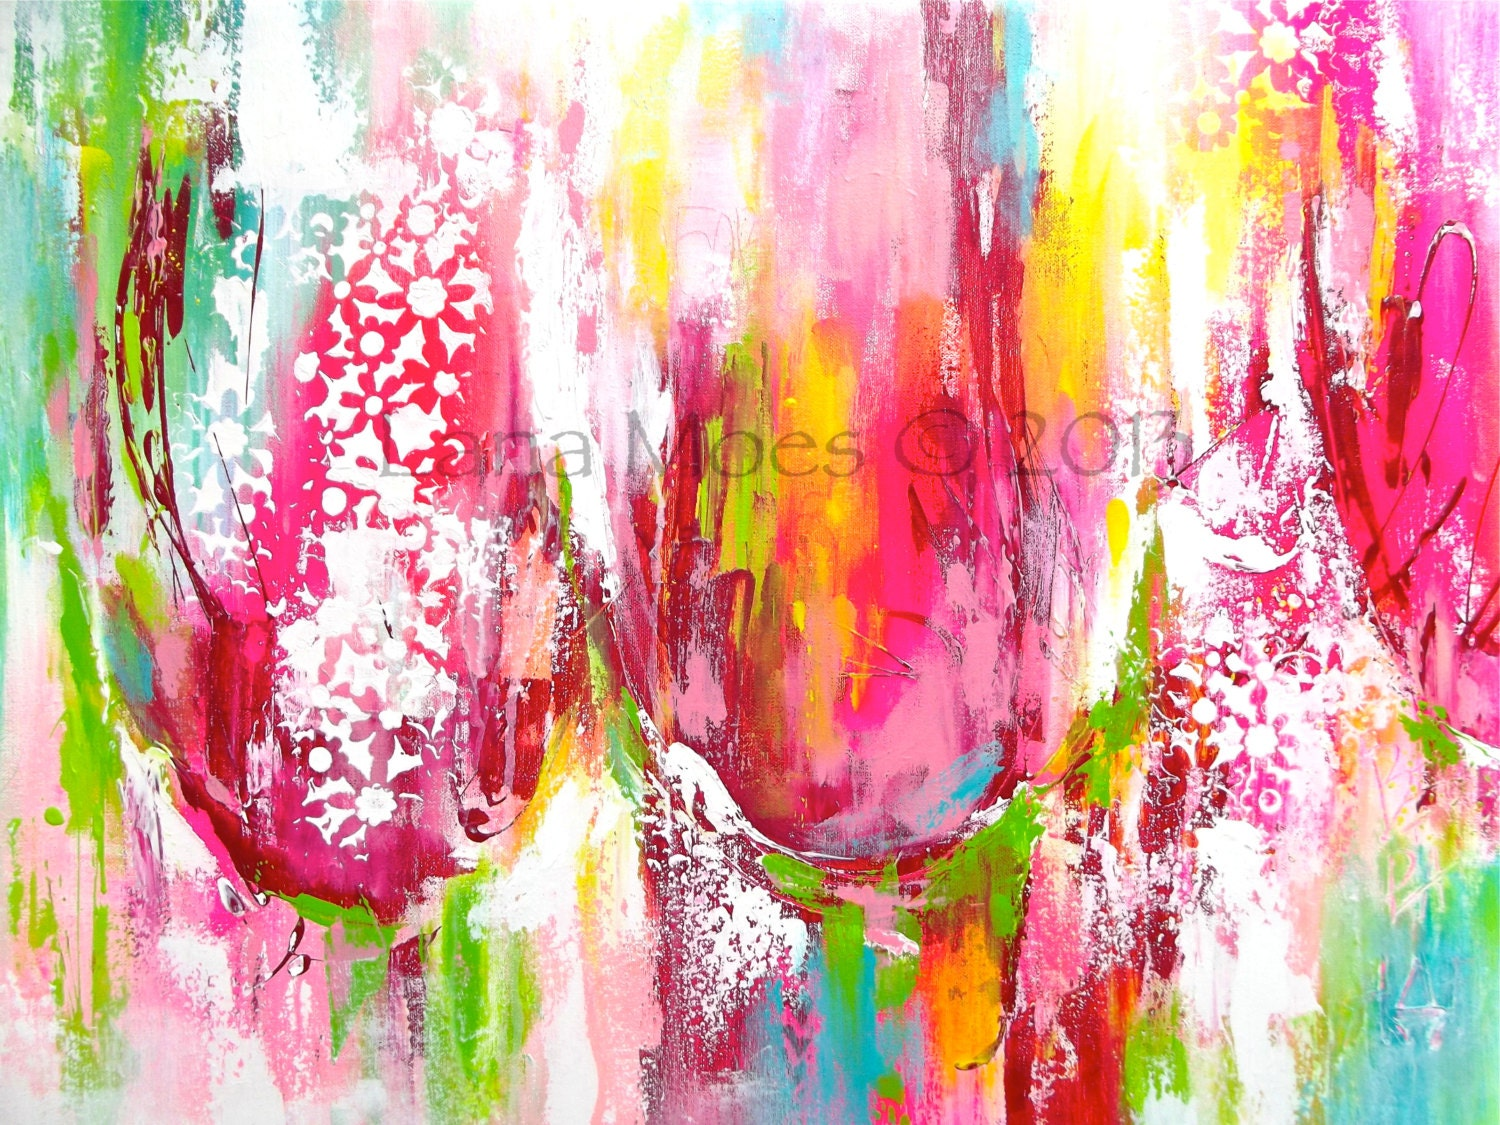 Large Abstract Tulips Painting  - Pink, Red, Chartreuse, Teal Painting - Made to Order - Contemporary Home Decor - lanasfineart